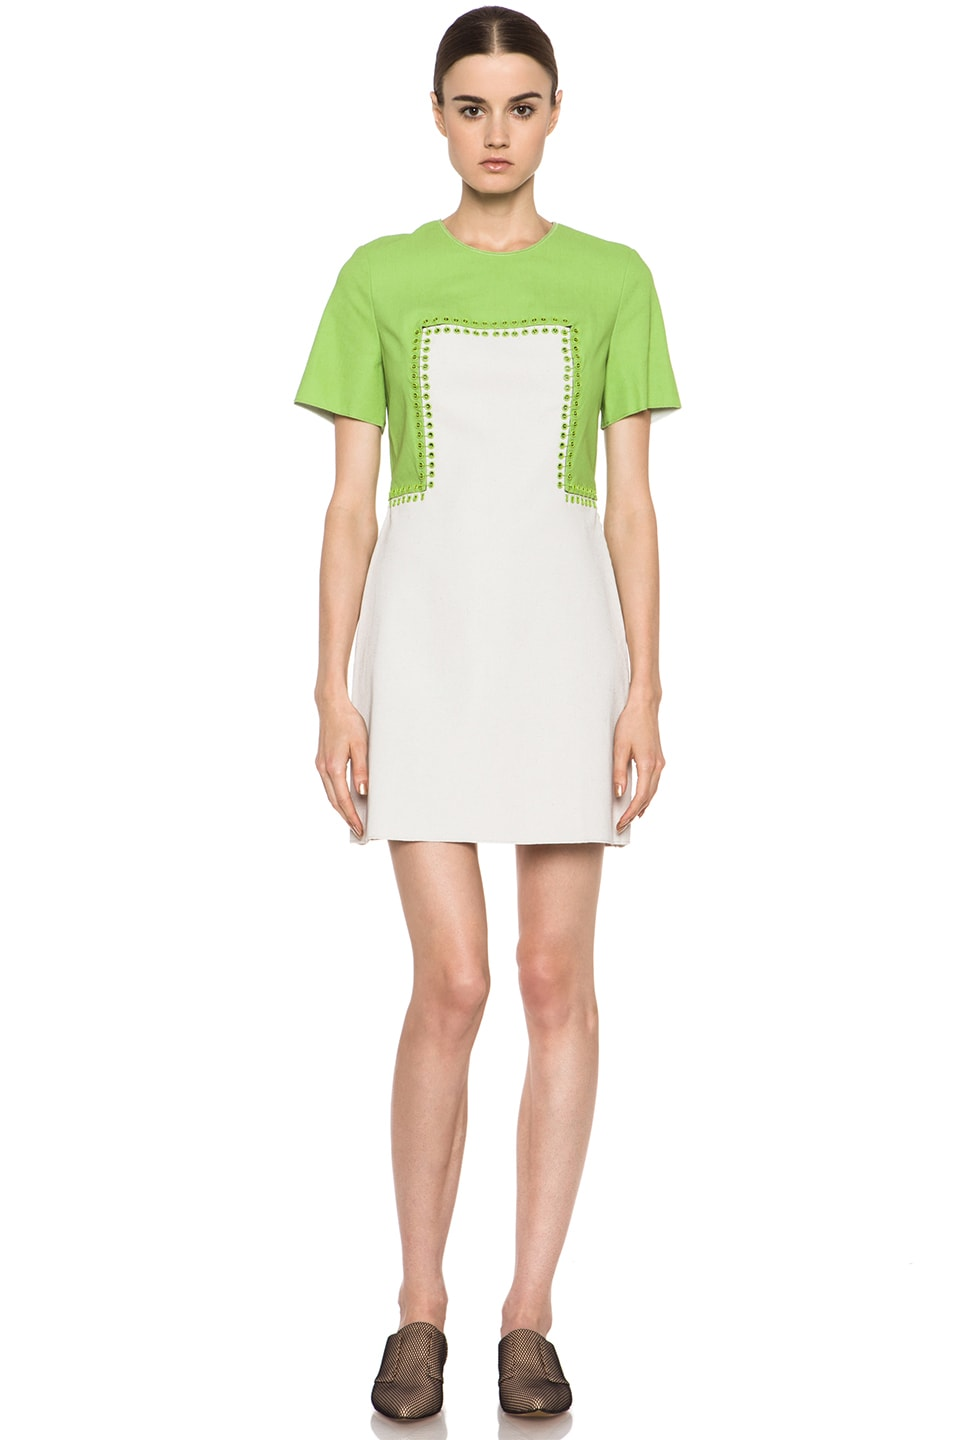 Image 1 of 3.1 phillip lim Shift Dress with Pin and Eyelet Embellishment in Avocado & Canvas